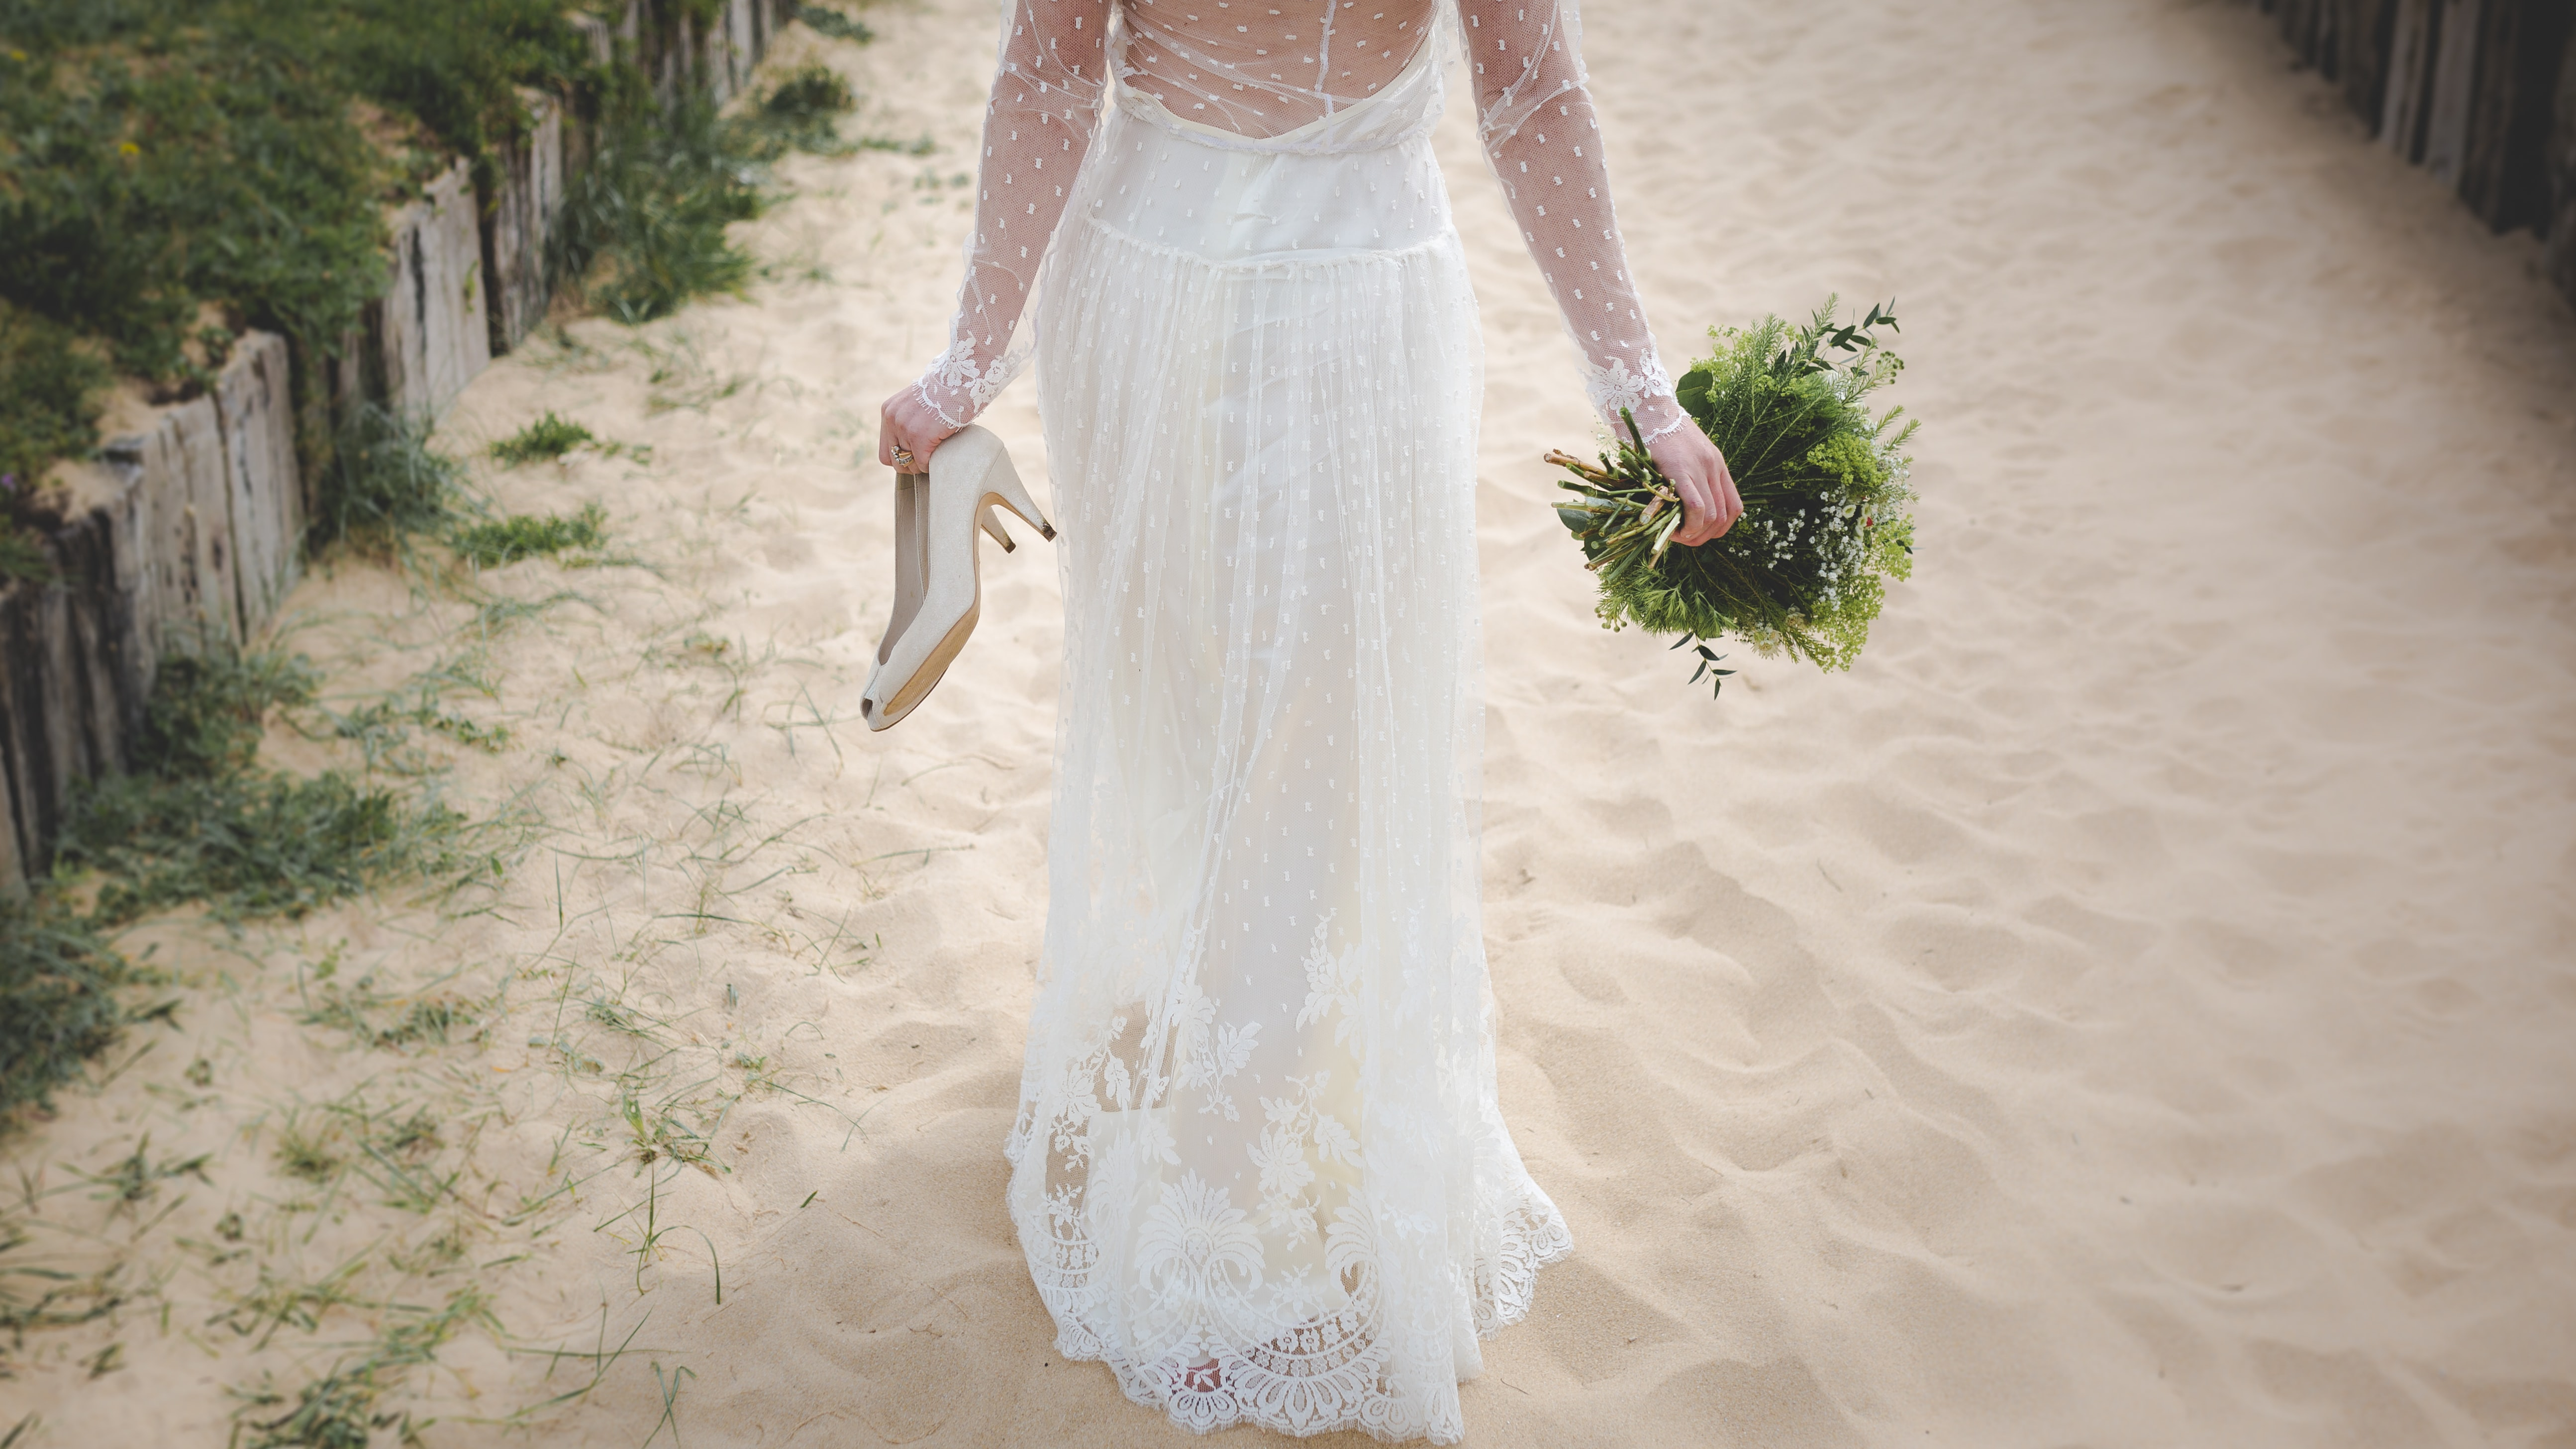 Bride holds shoes and bouquet while walking in sands of Sainte-Marie-de-Ré